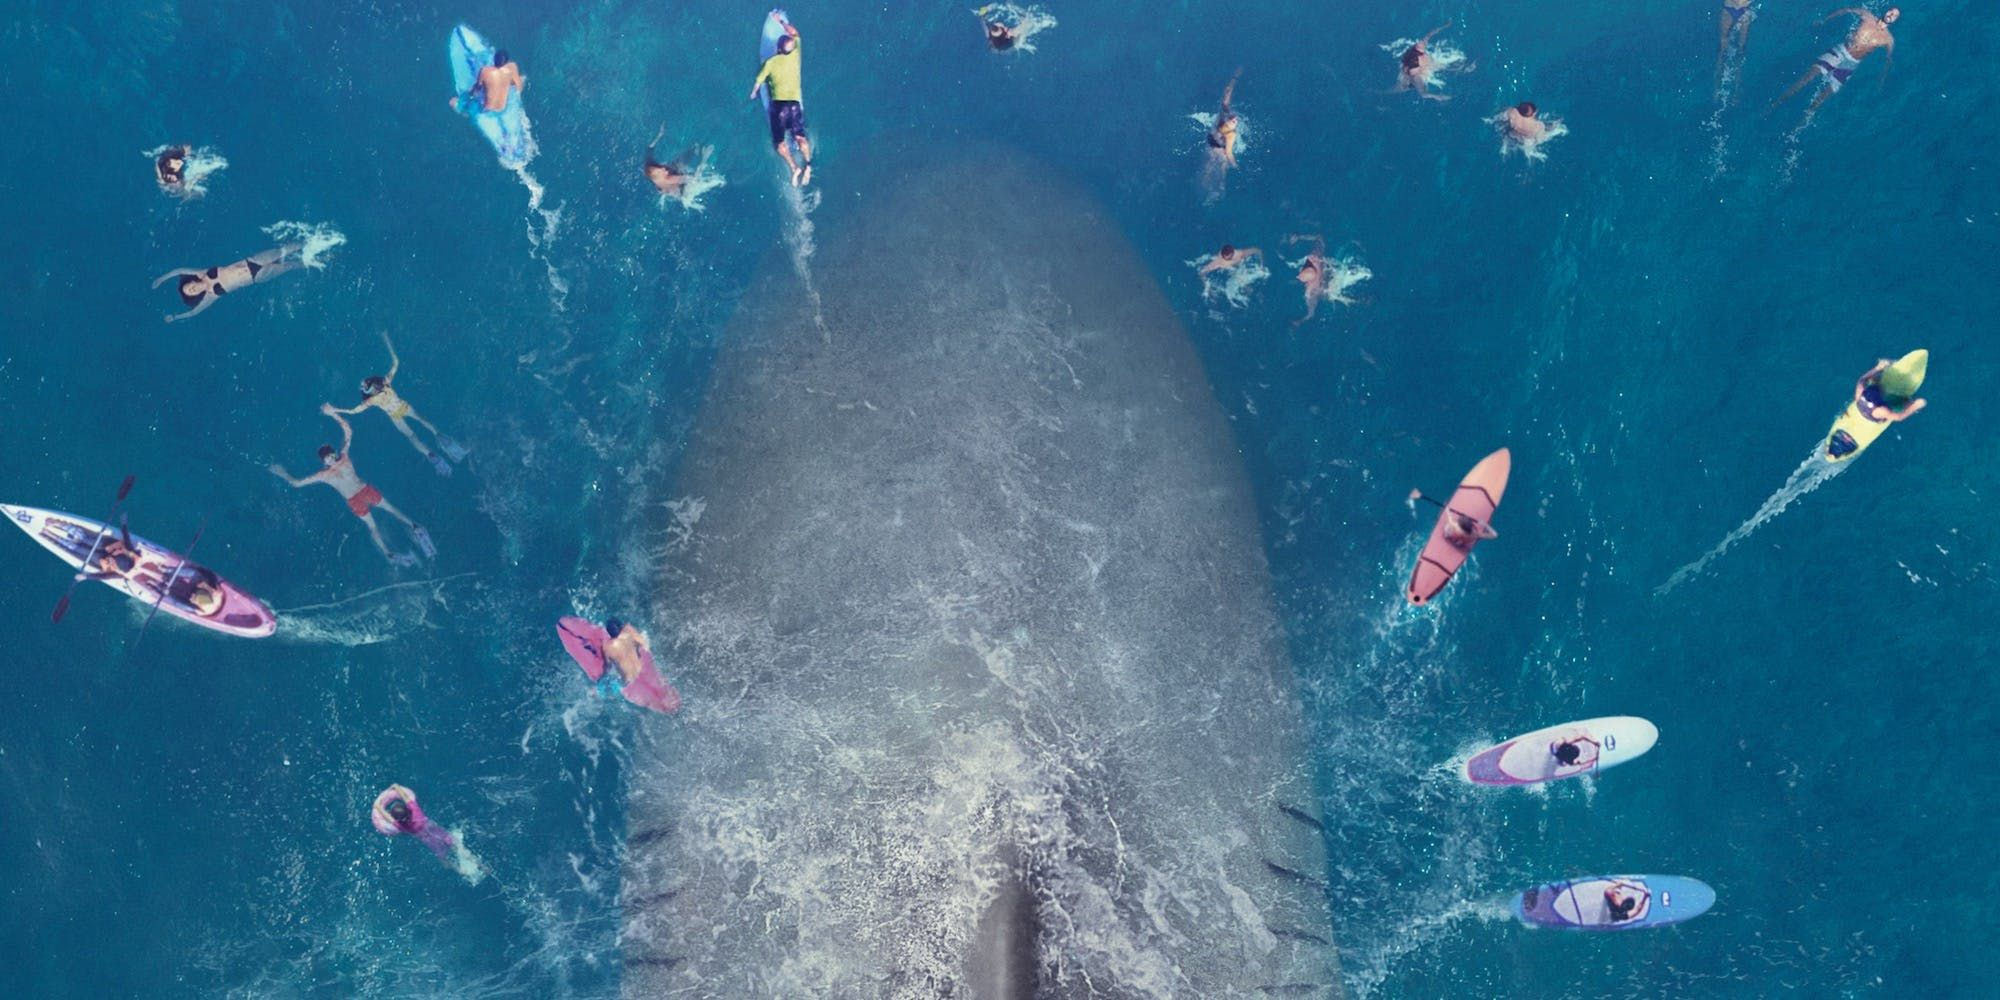 All 'The Meg' Trailer Shots From 'Jaws'